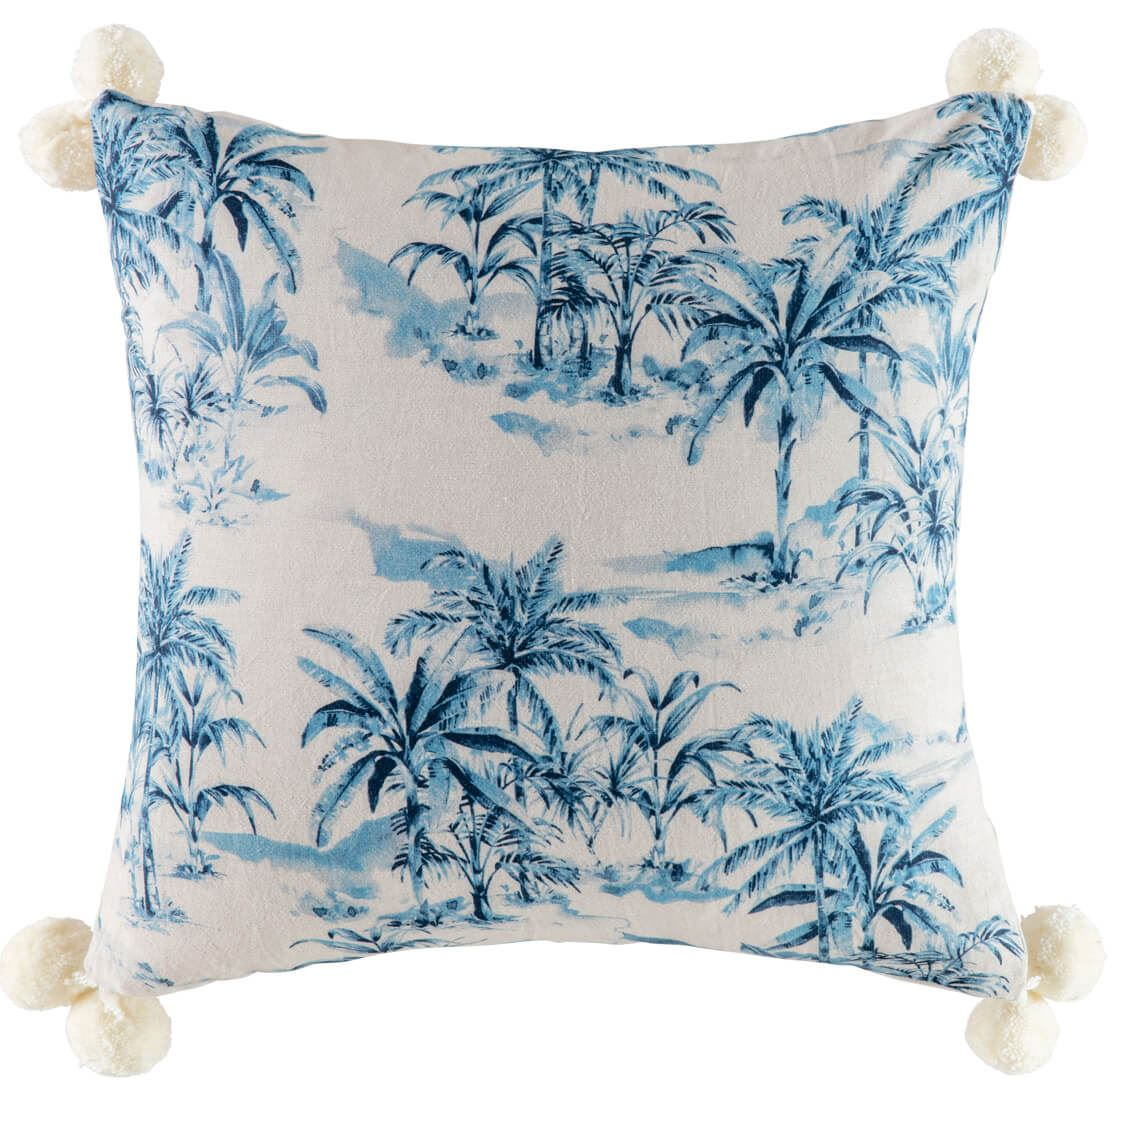 Pica Cushion, Size W 50cm x D 15cm x H 50cm in Natural/Blue Freedom